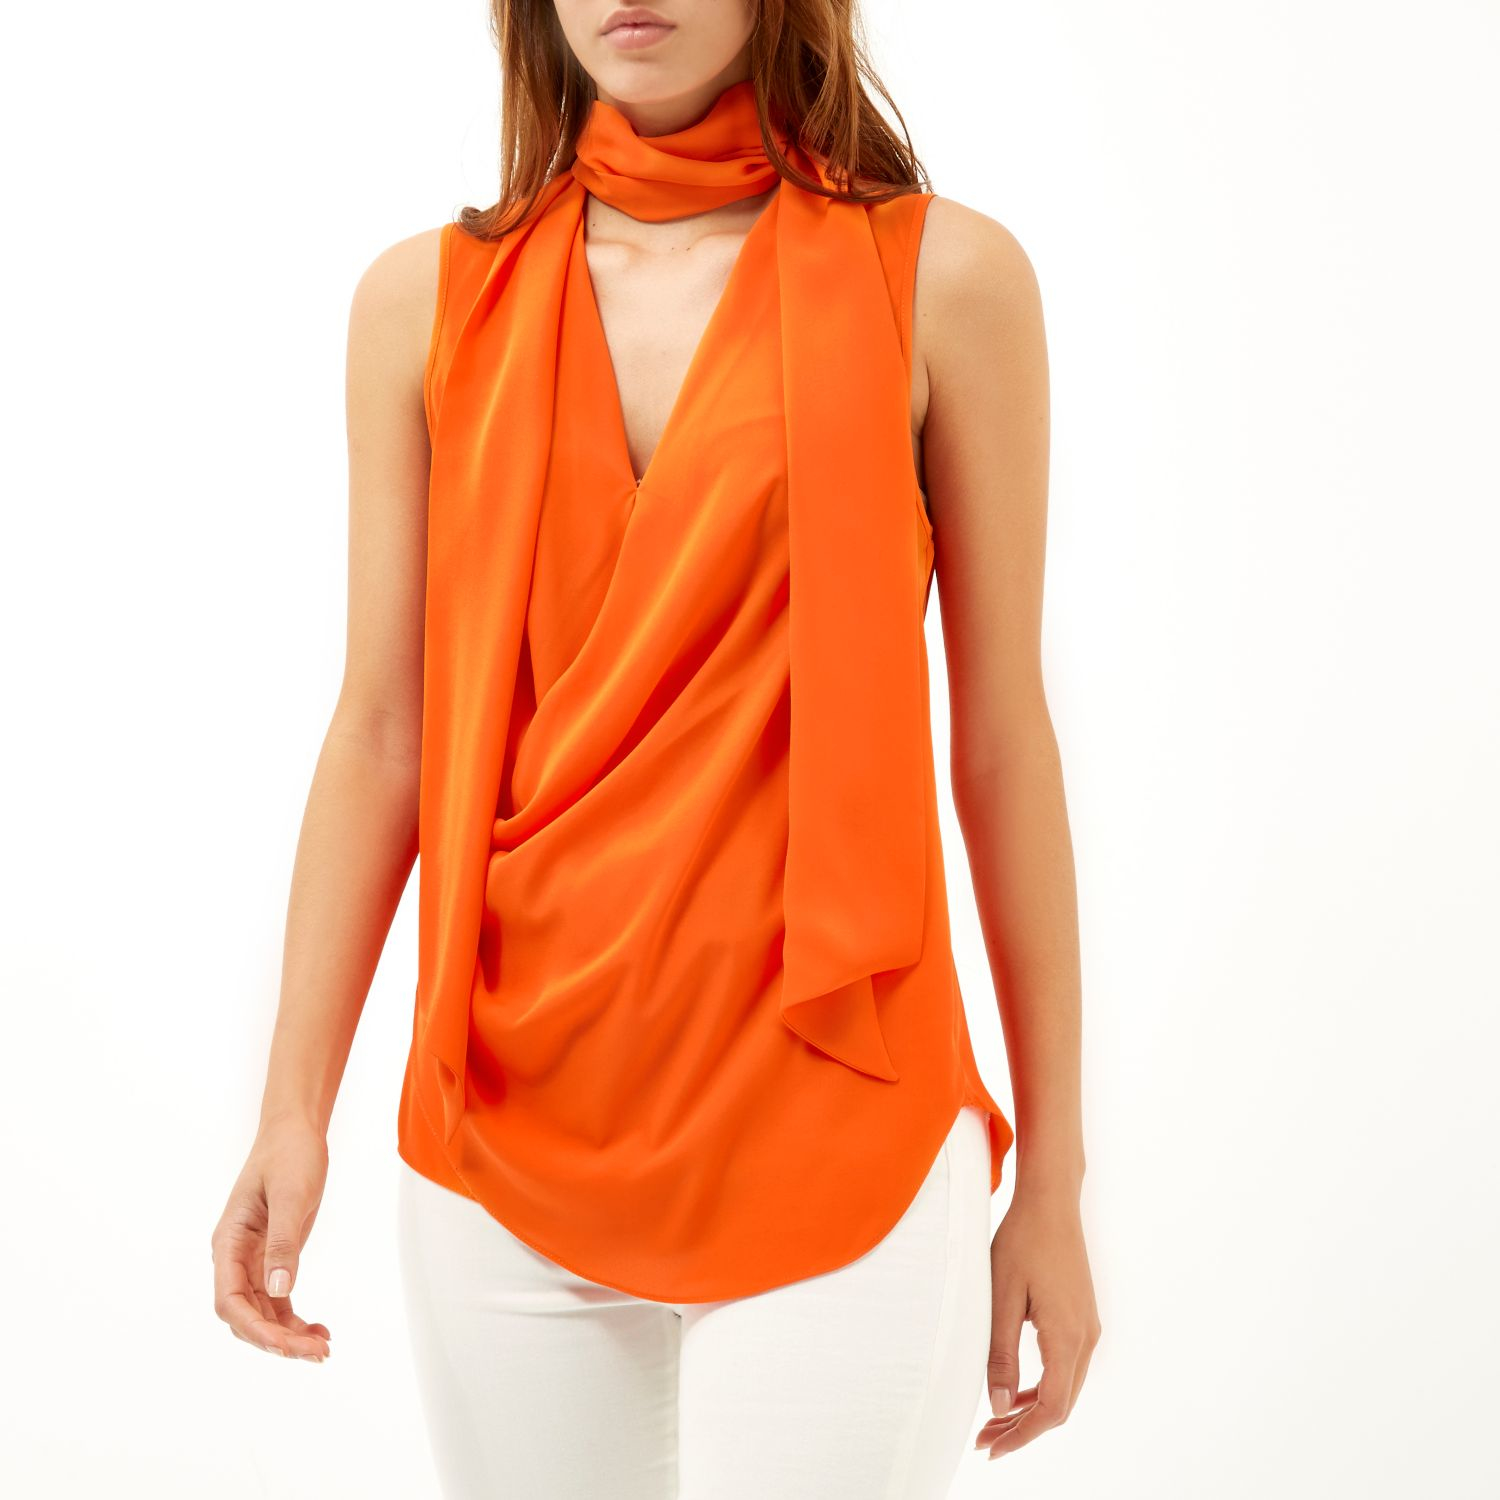 All about Burnt Orange Blouses